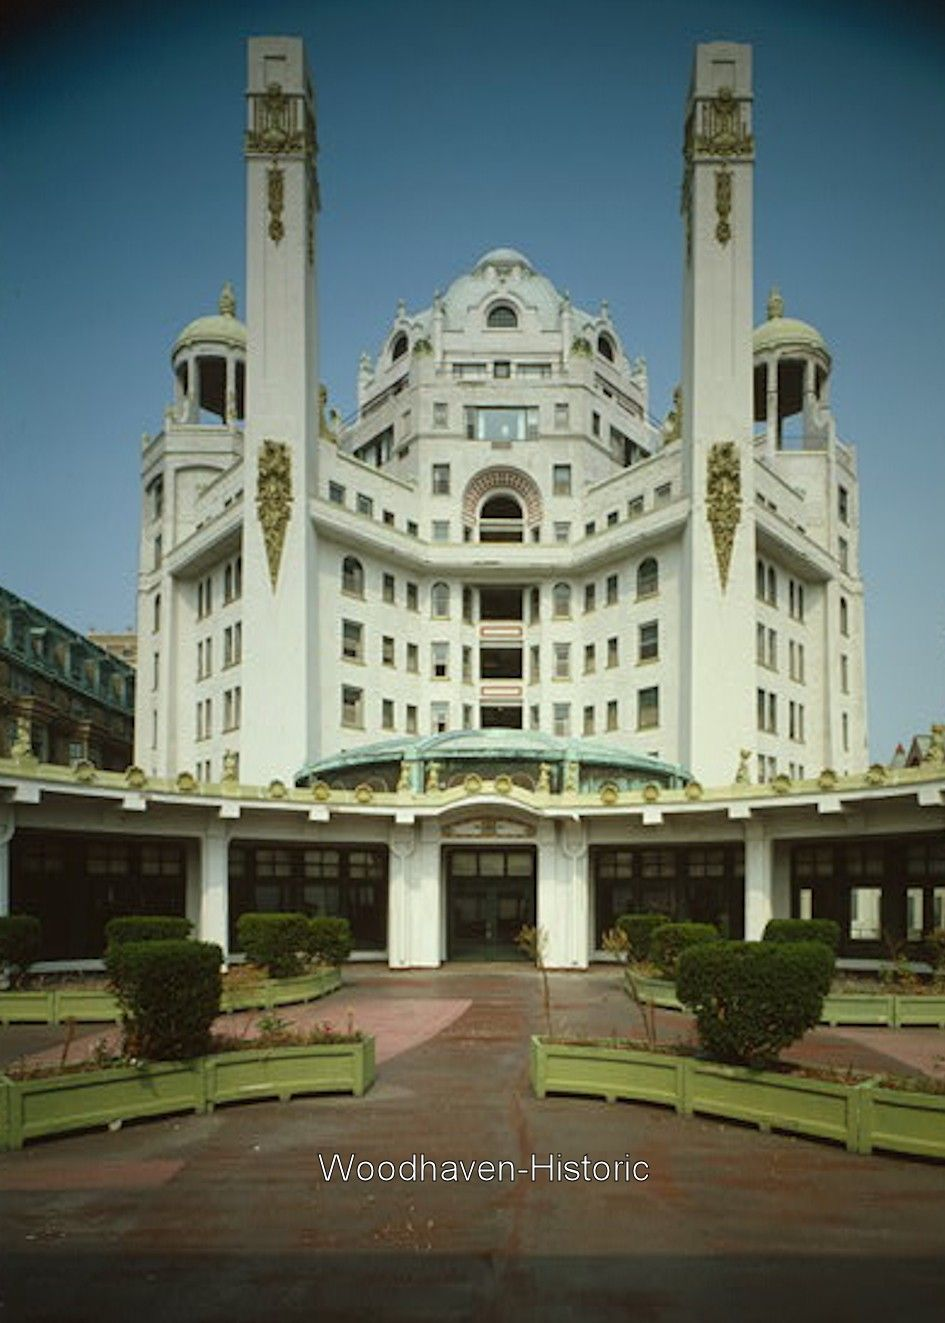 Atlantic City Historic Hotels Blenheim Hotel Atlantic City Nj Picture Photo New Jersey United Atlantic City Atlantic City Hotels Blenheim